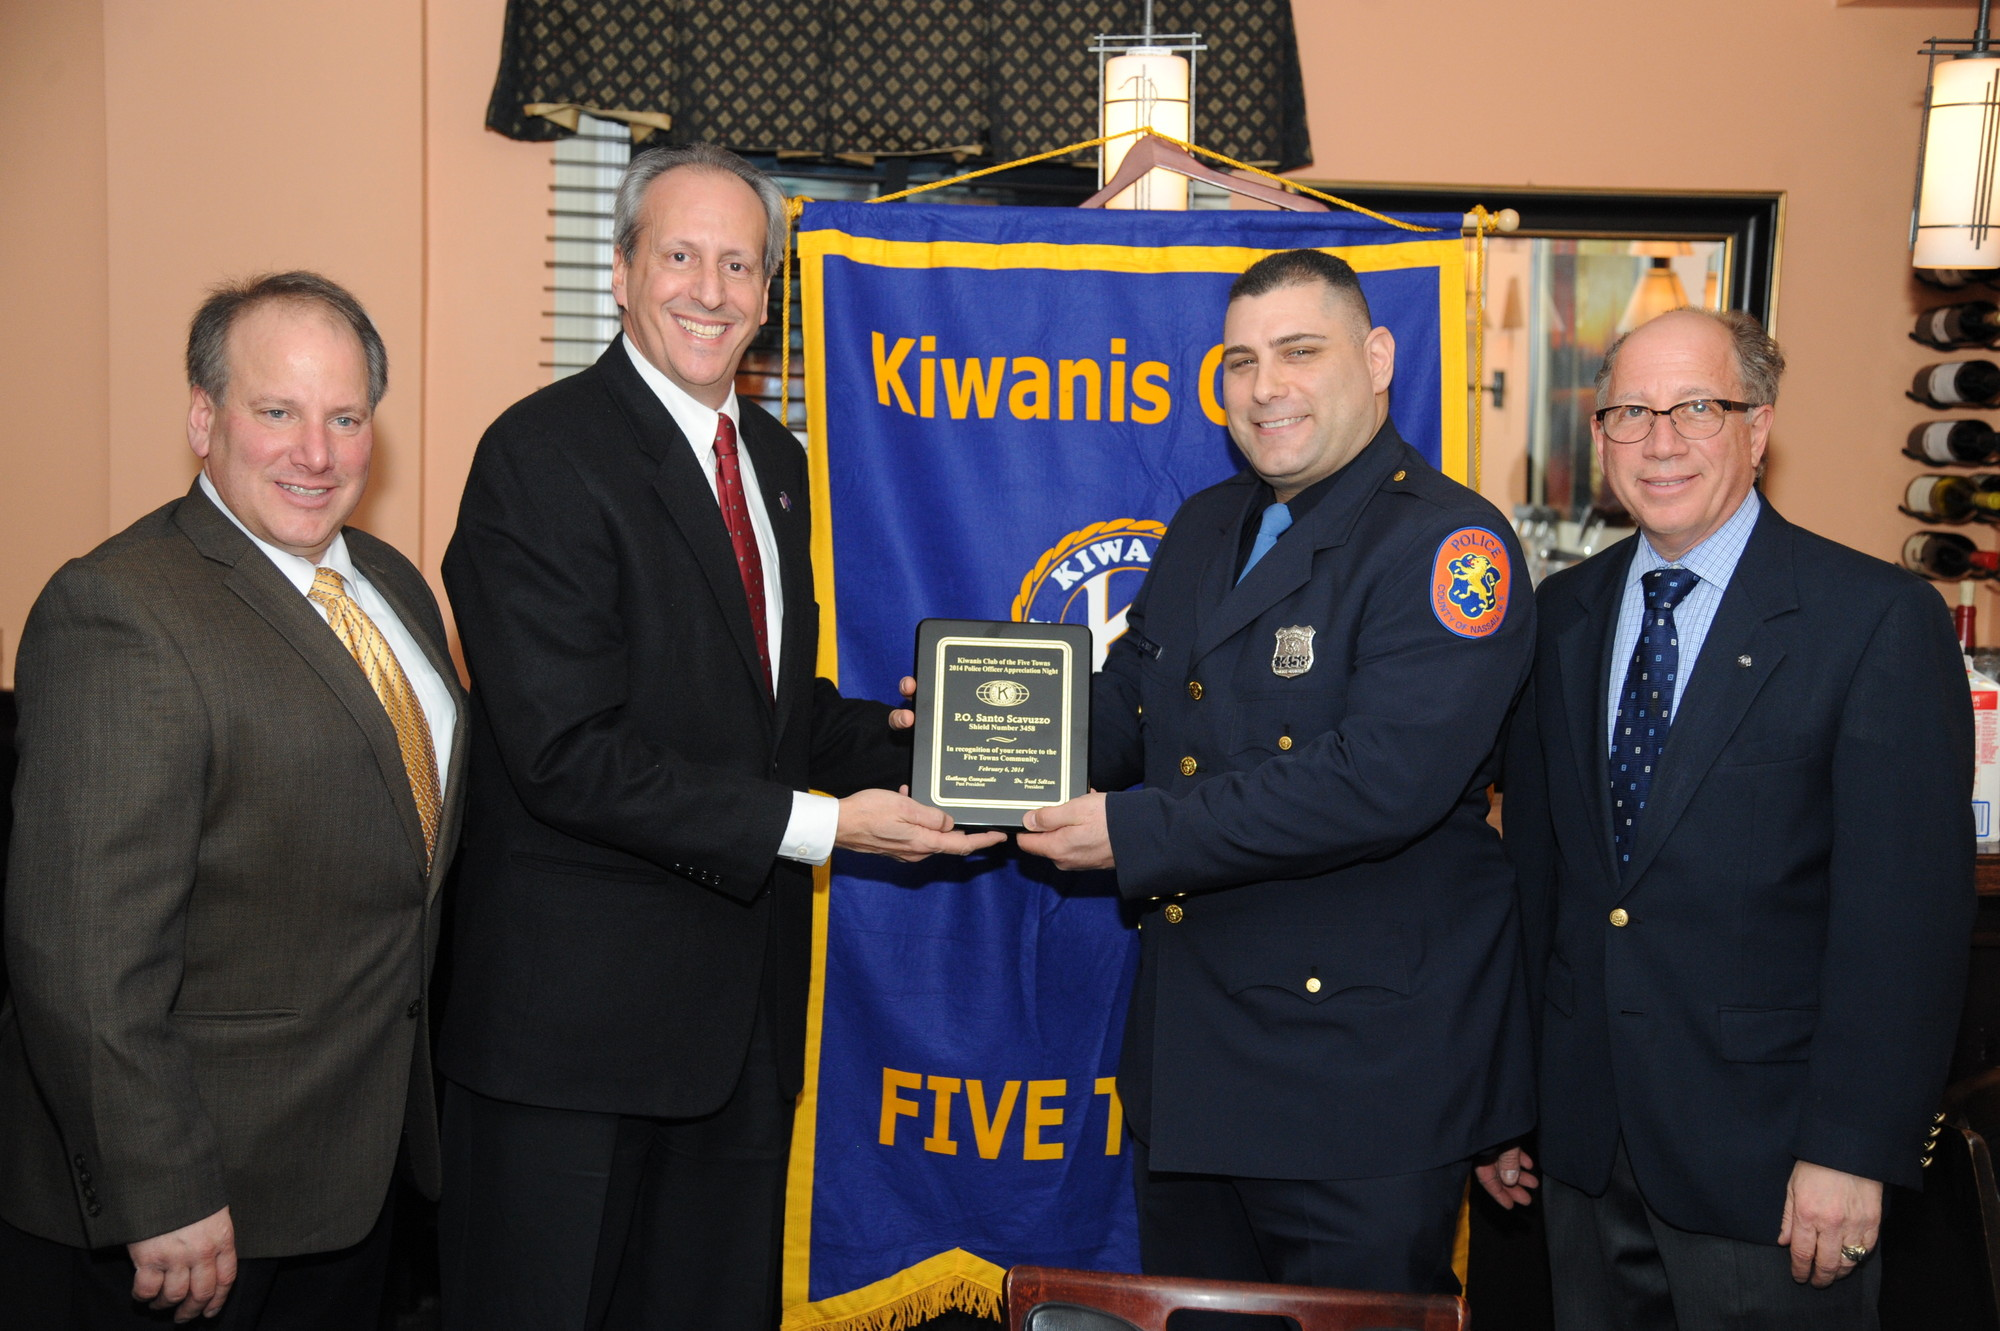 Kiwanis of the Five Towns members Anthony Campanile and Tom Cohen, Officer Santo Scavuzzo and Kiwanis President Dr. Fred Seltzer.